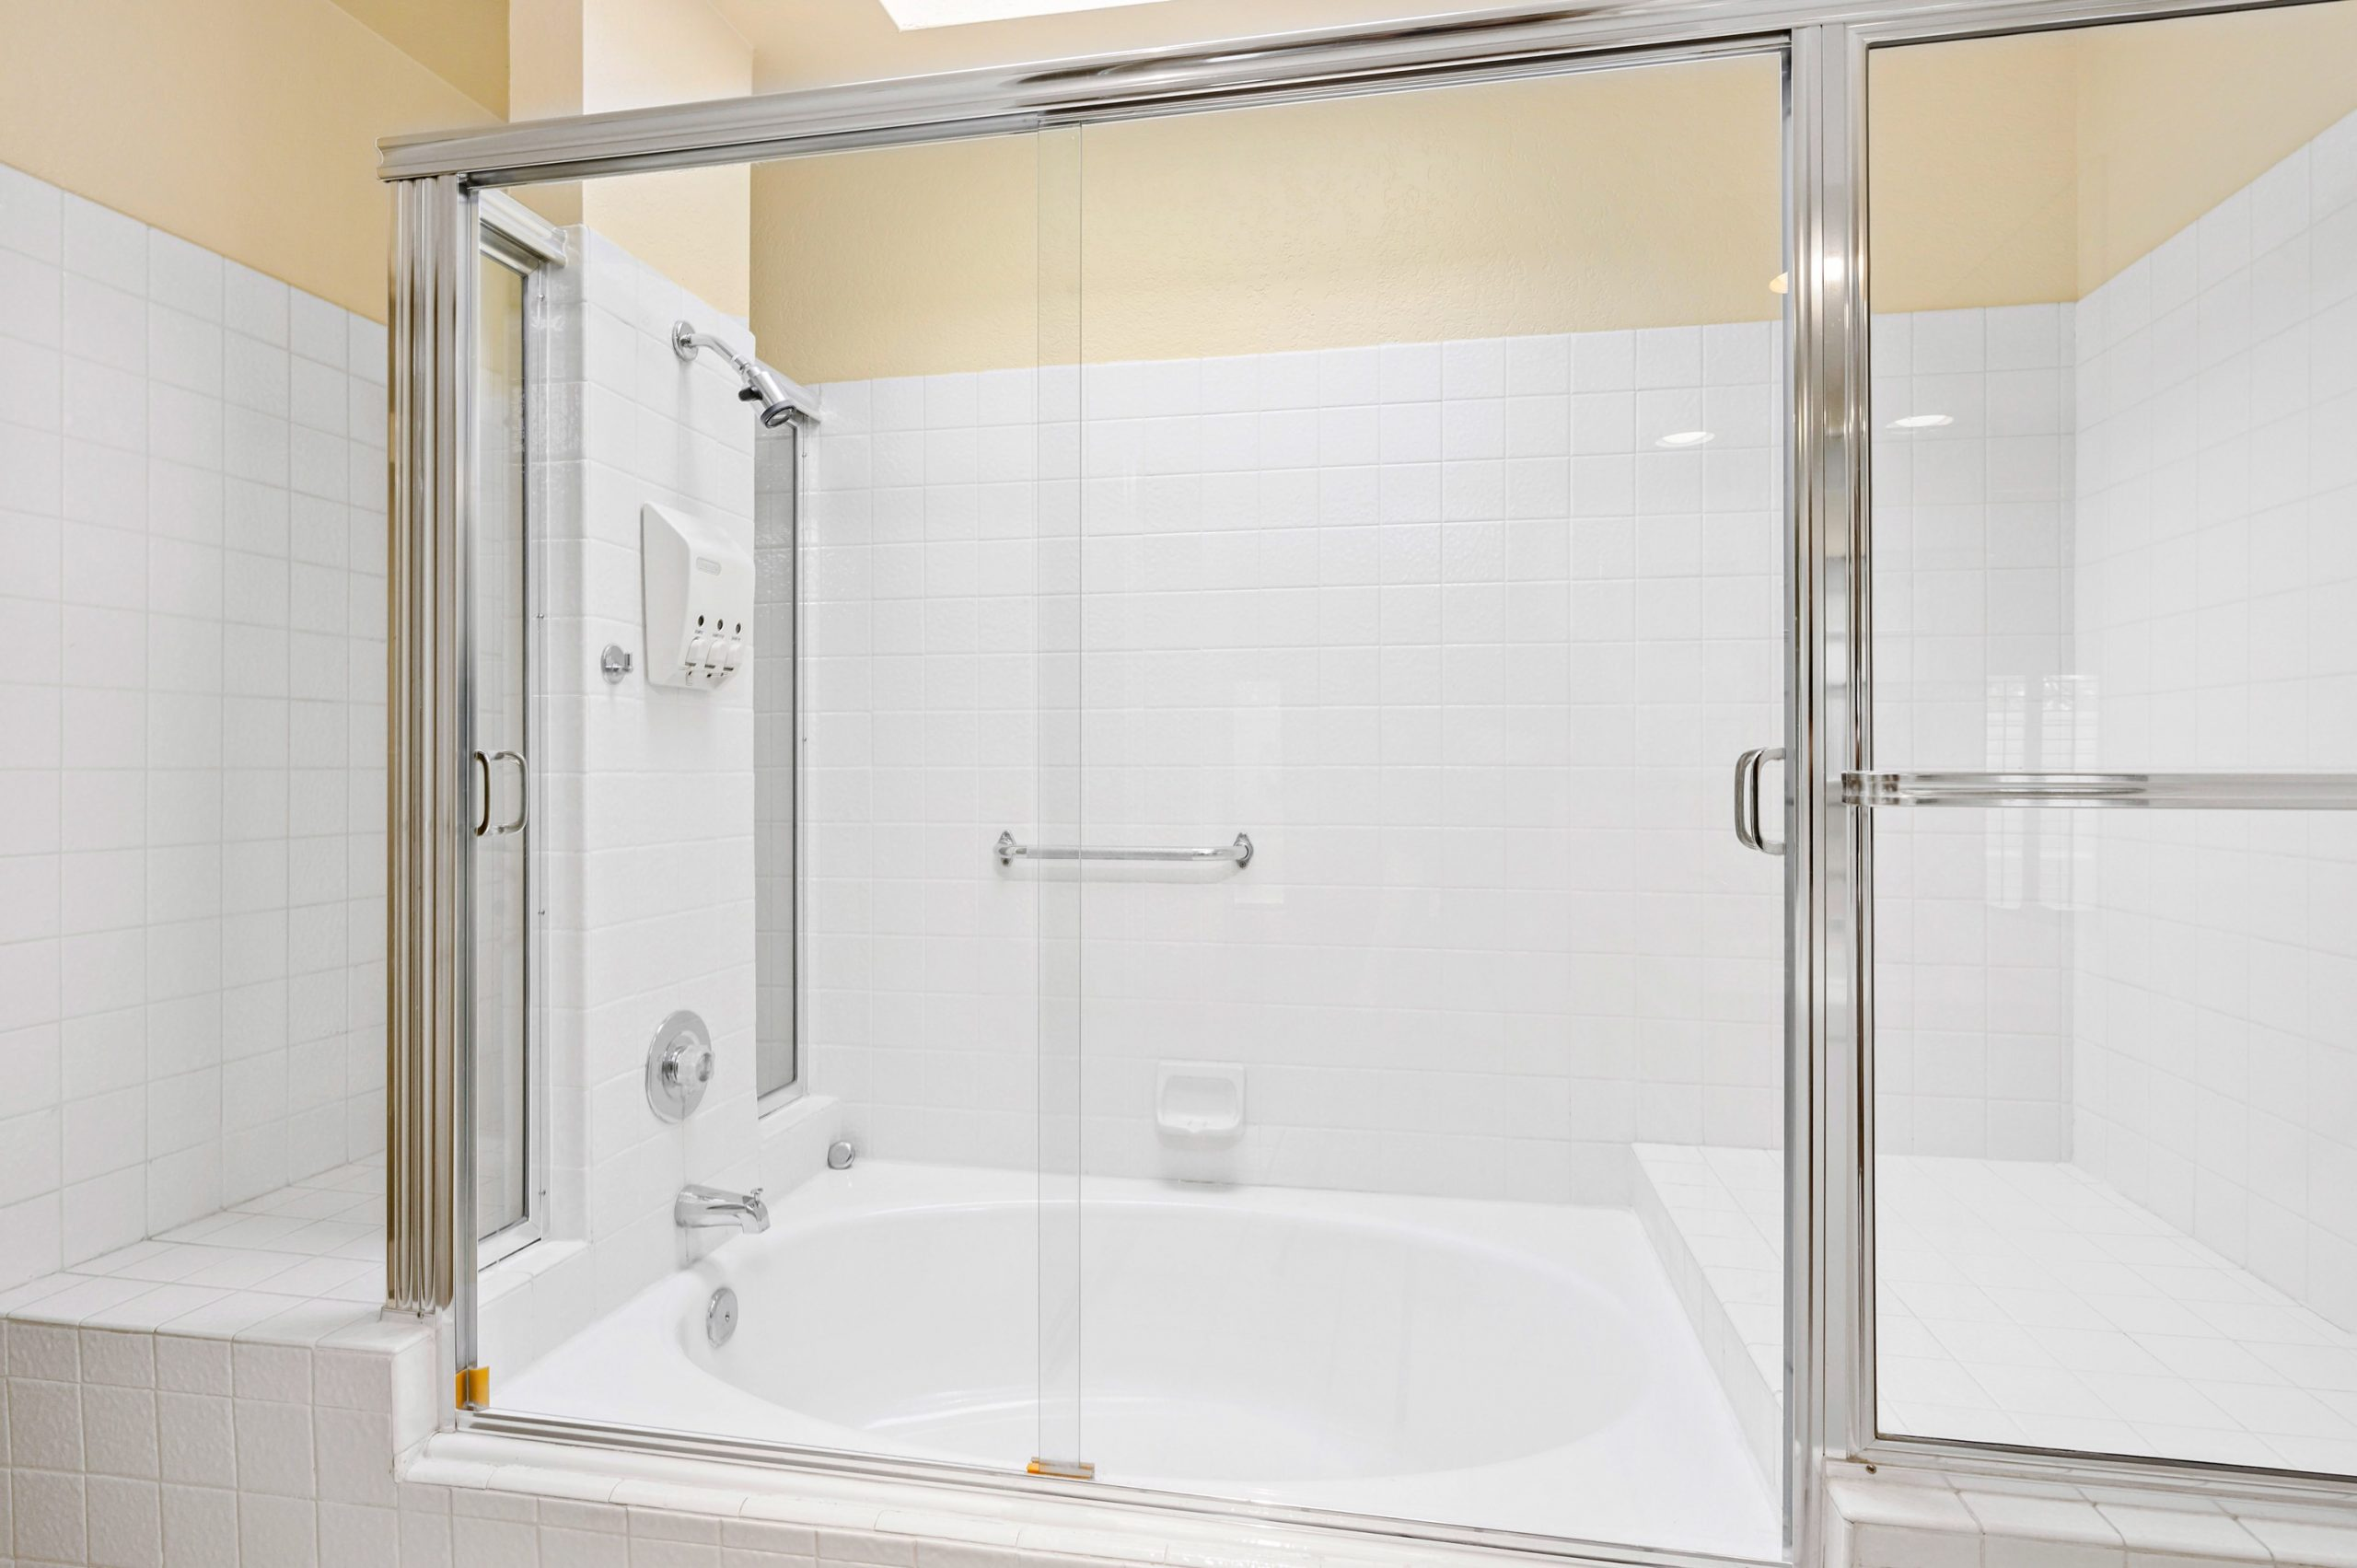 23-Master Ba-shower tub_ZED_7180